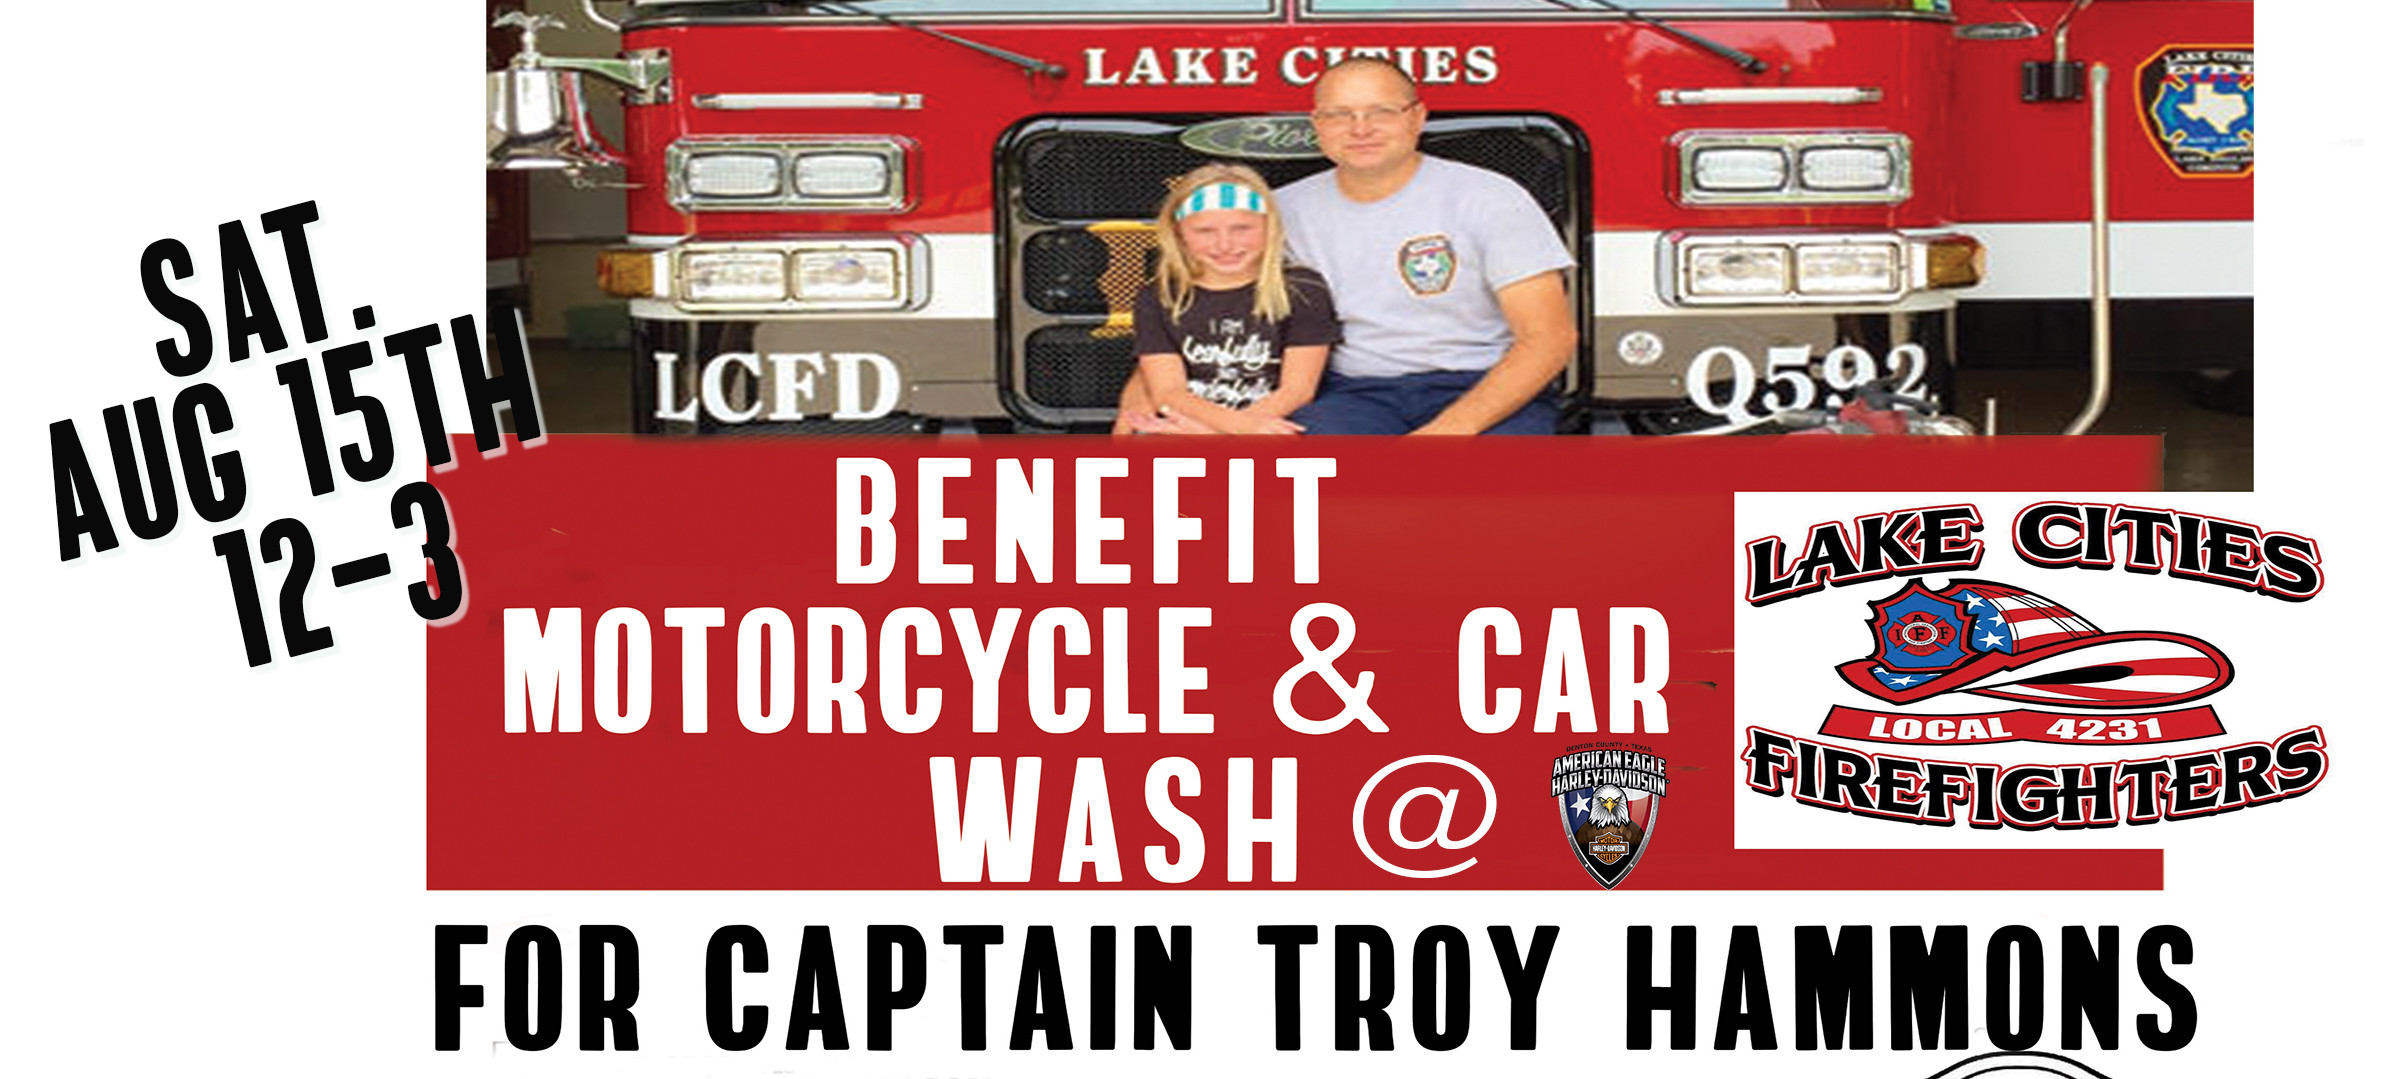 LAKE CITIES FIREFIGHTERS BENEFIT MOTORCYCLE & CAR WASH FOR CAPTAIN HAMMONS